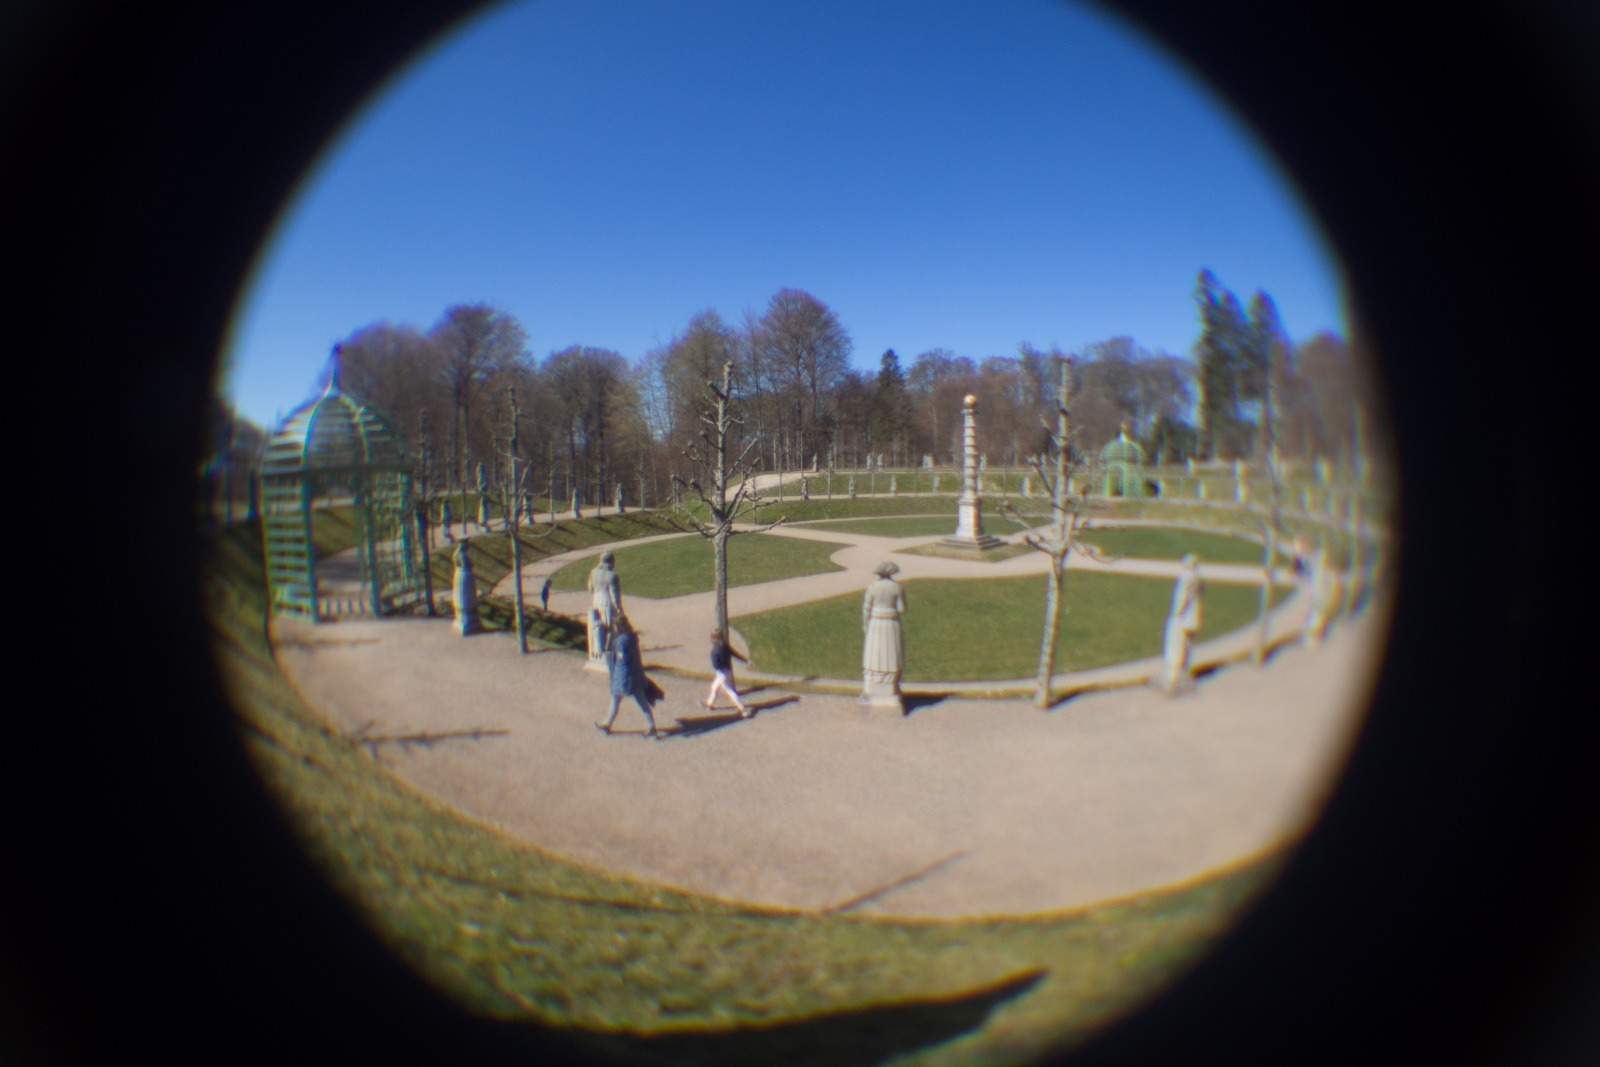 Photography or Lomography? Lomo style photography in Fredensborg